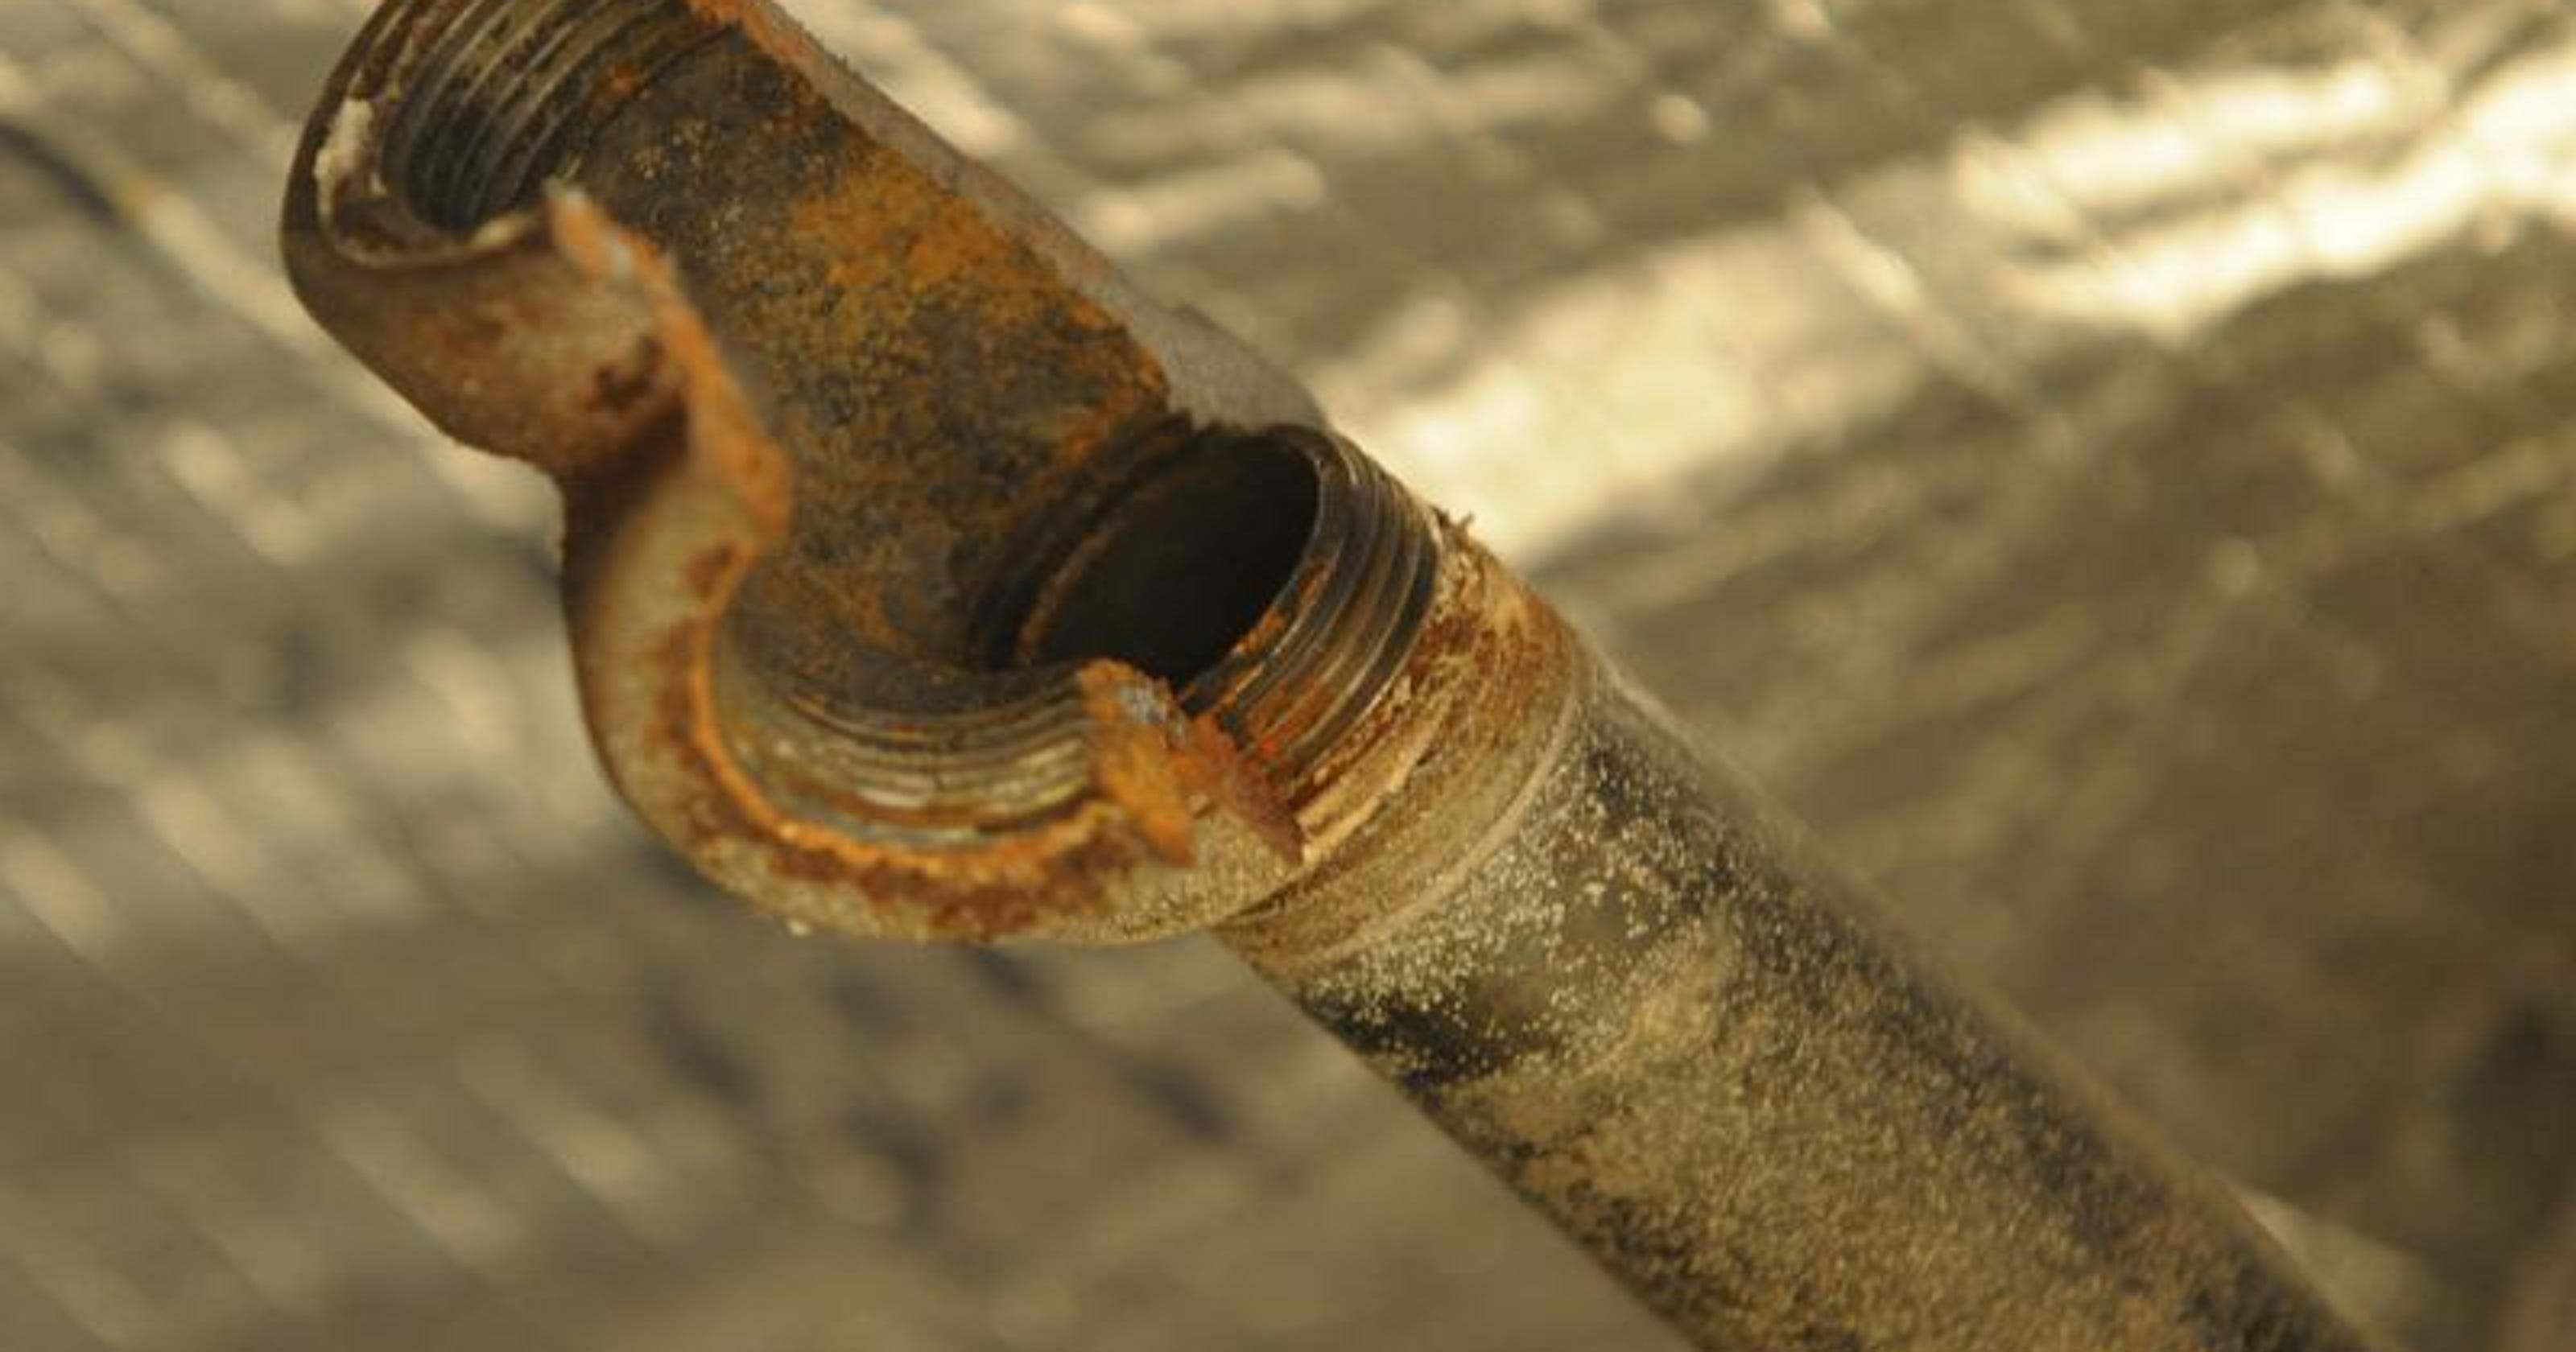 Eastside apartment site faces evictions for burst pipes